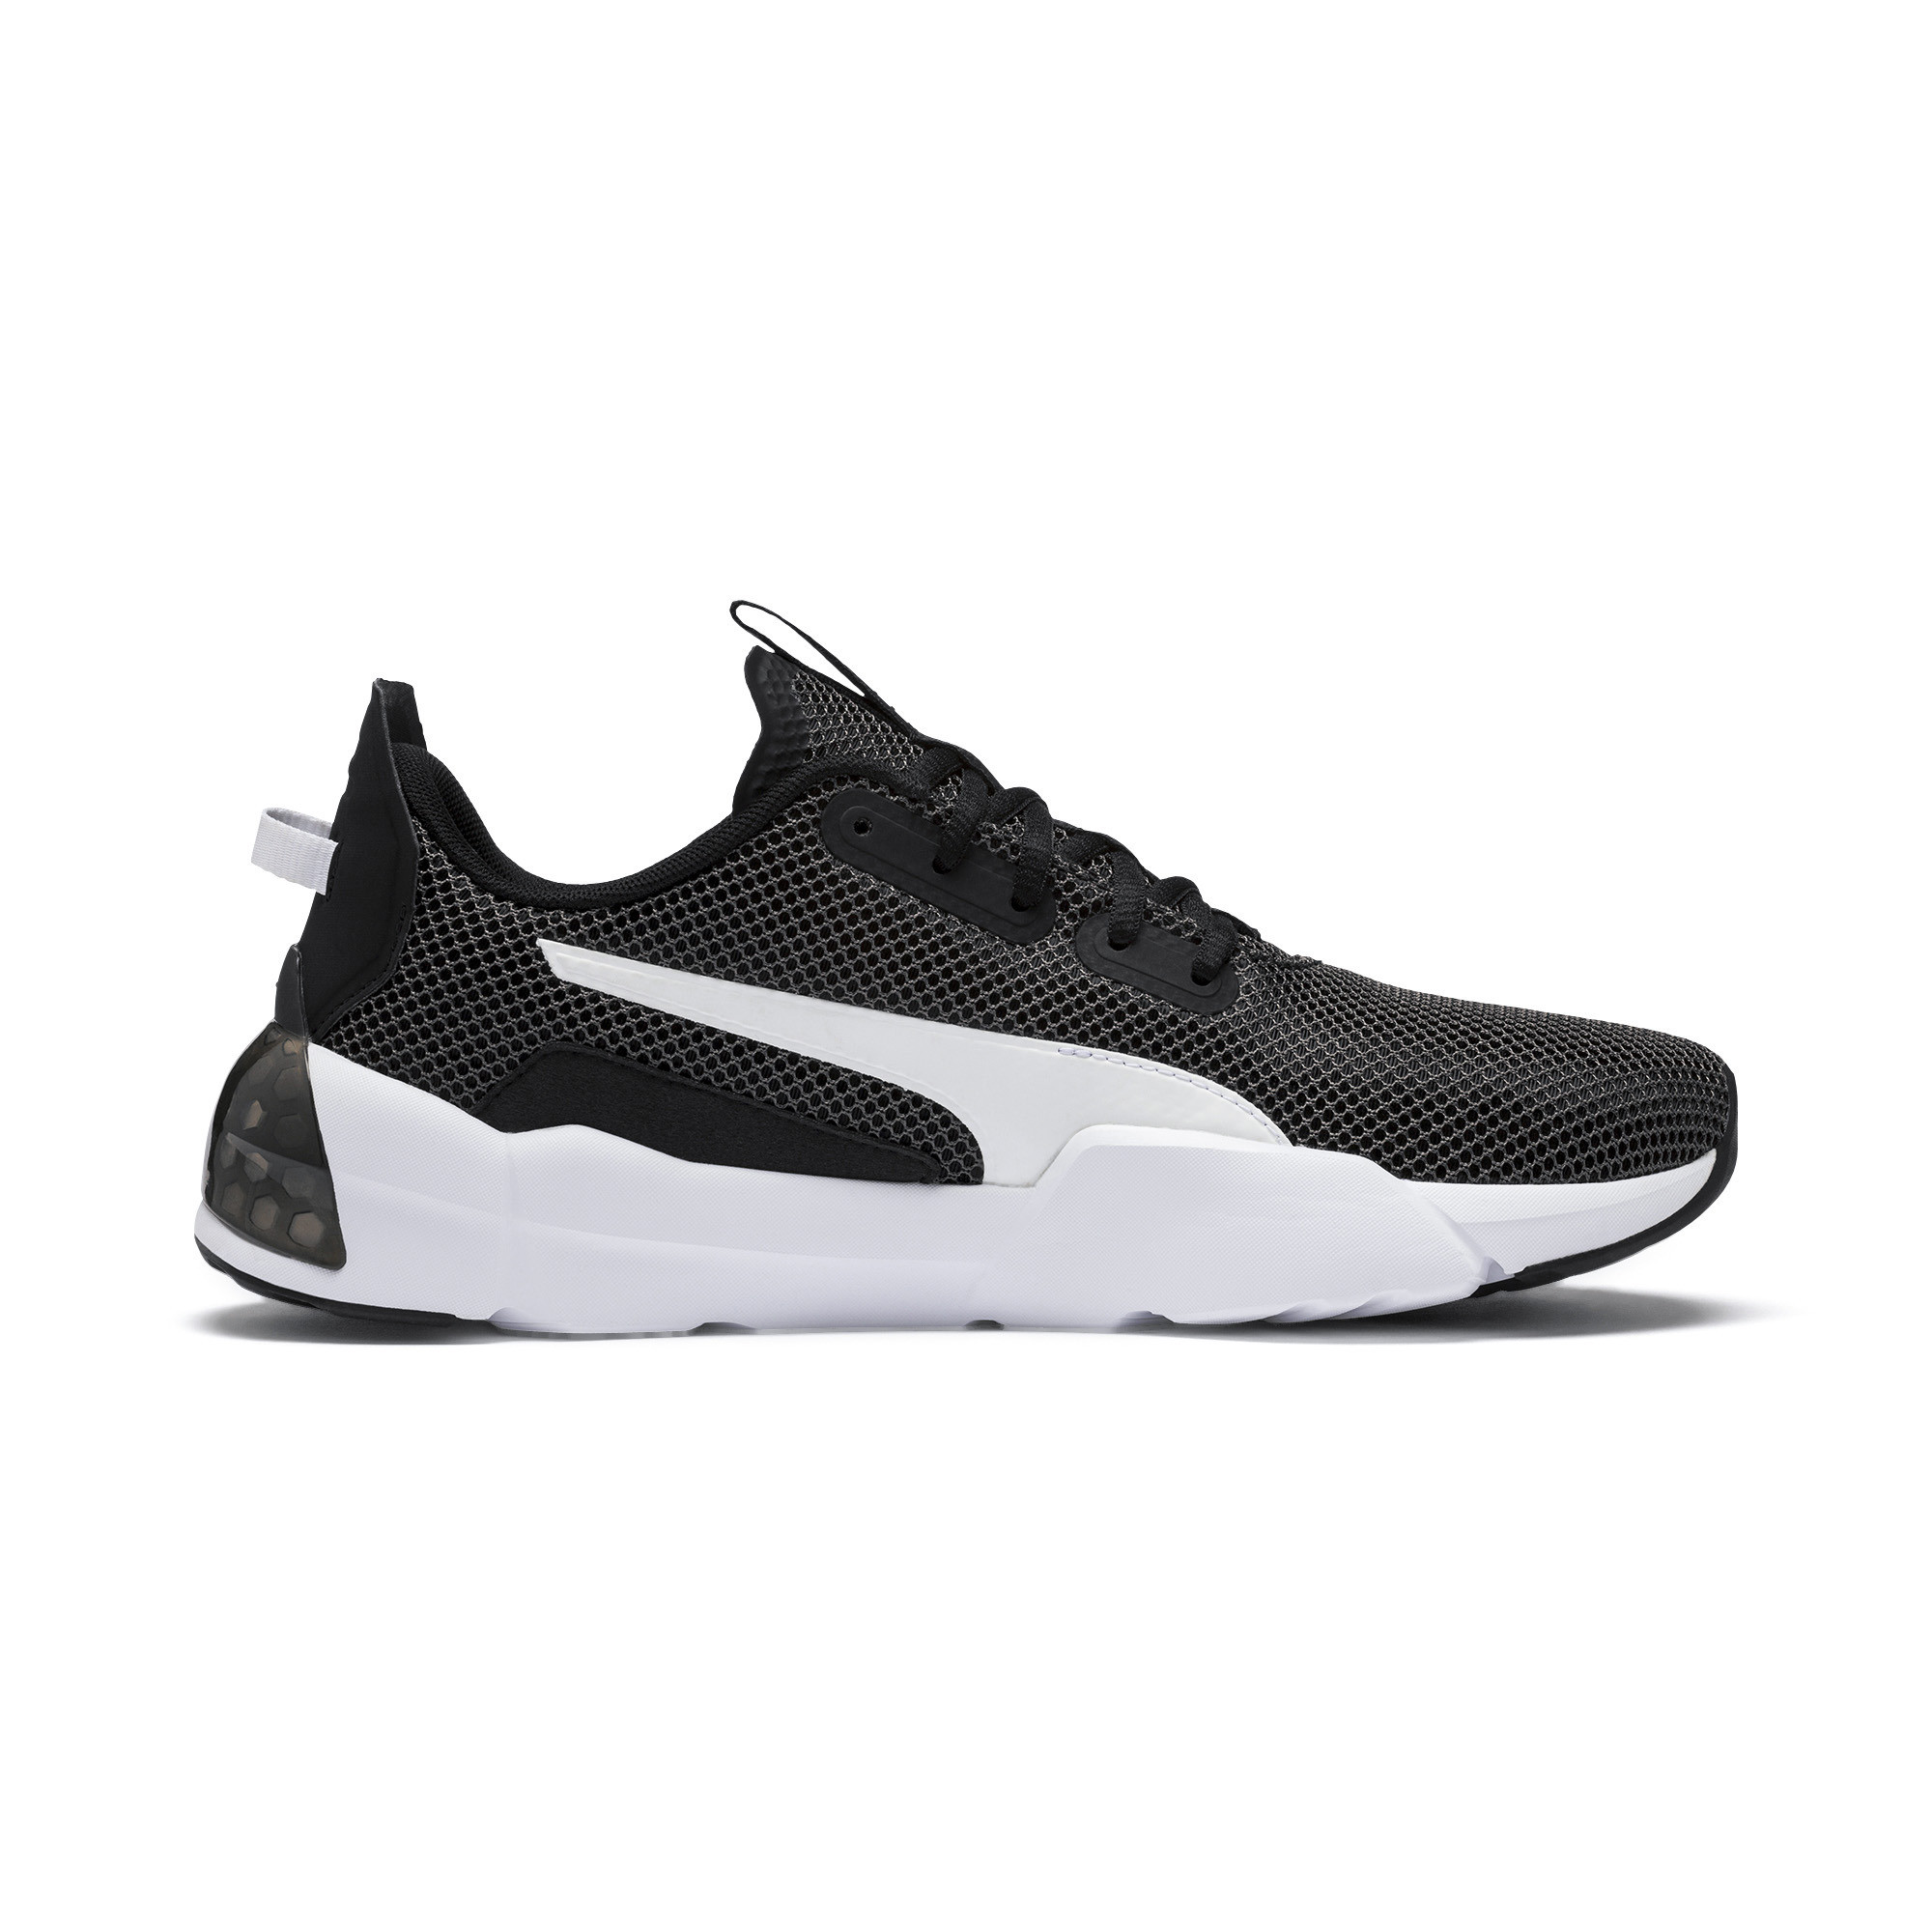 PUMA-Men-039-s-CELL-Phase-Training-Shoes thumbnail 26